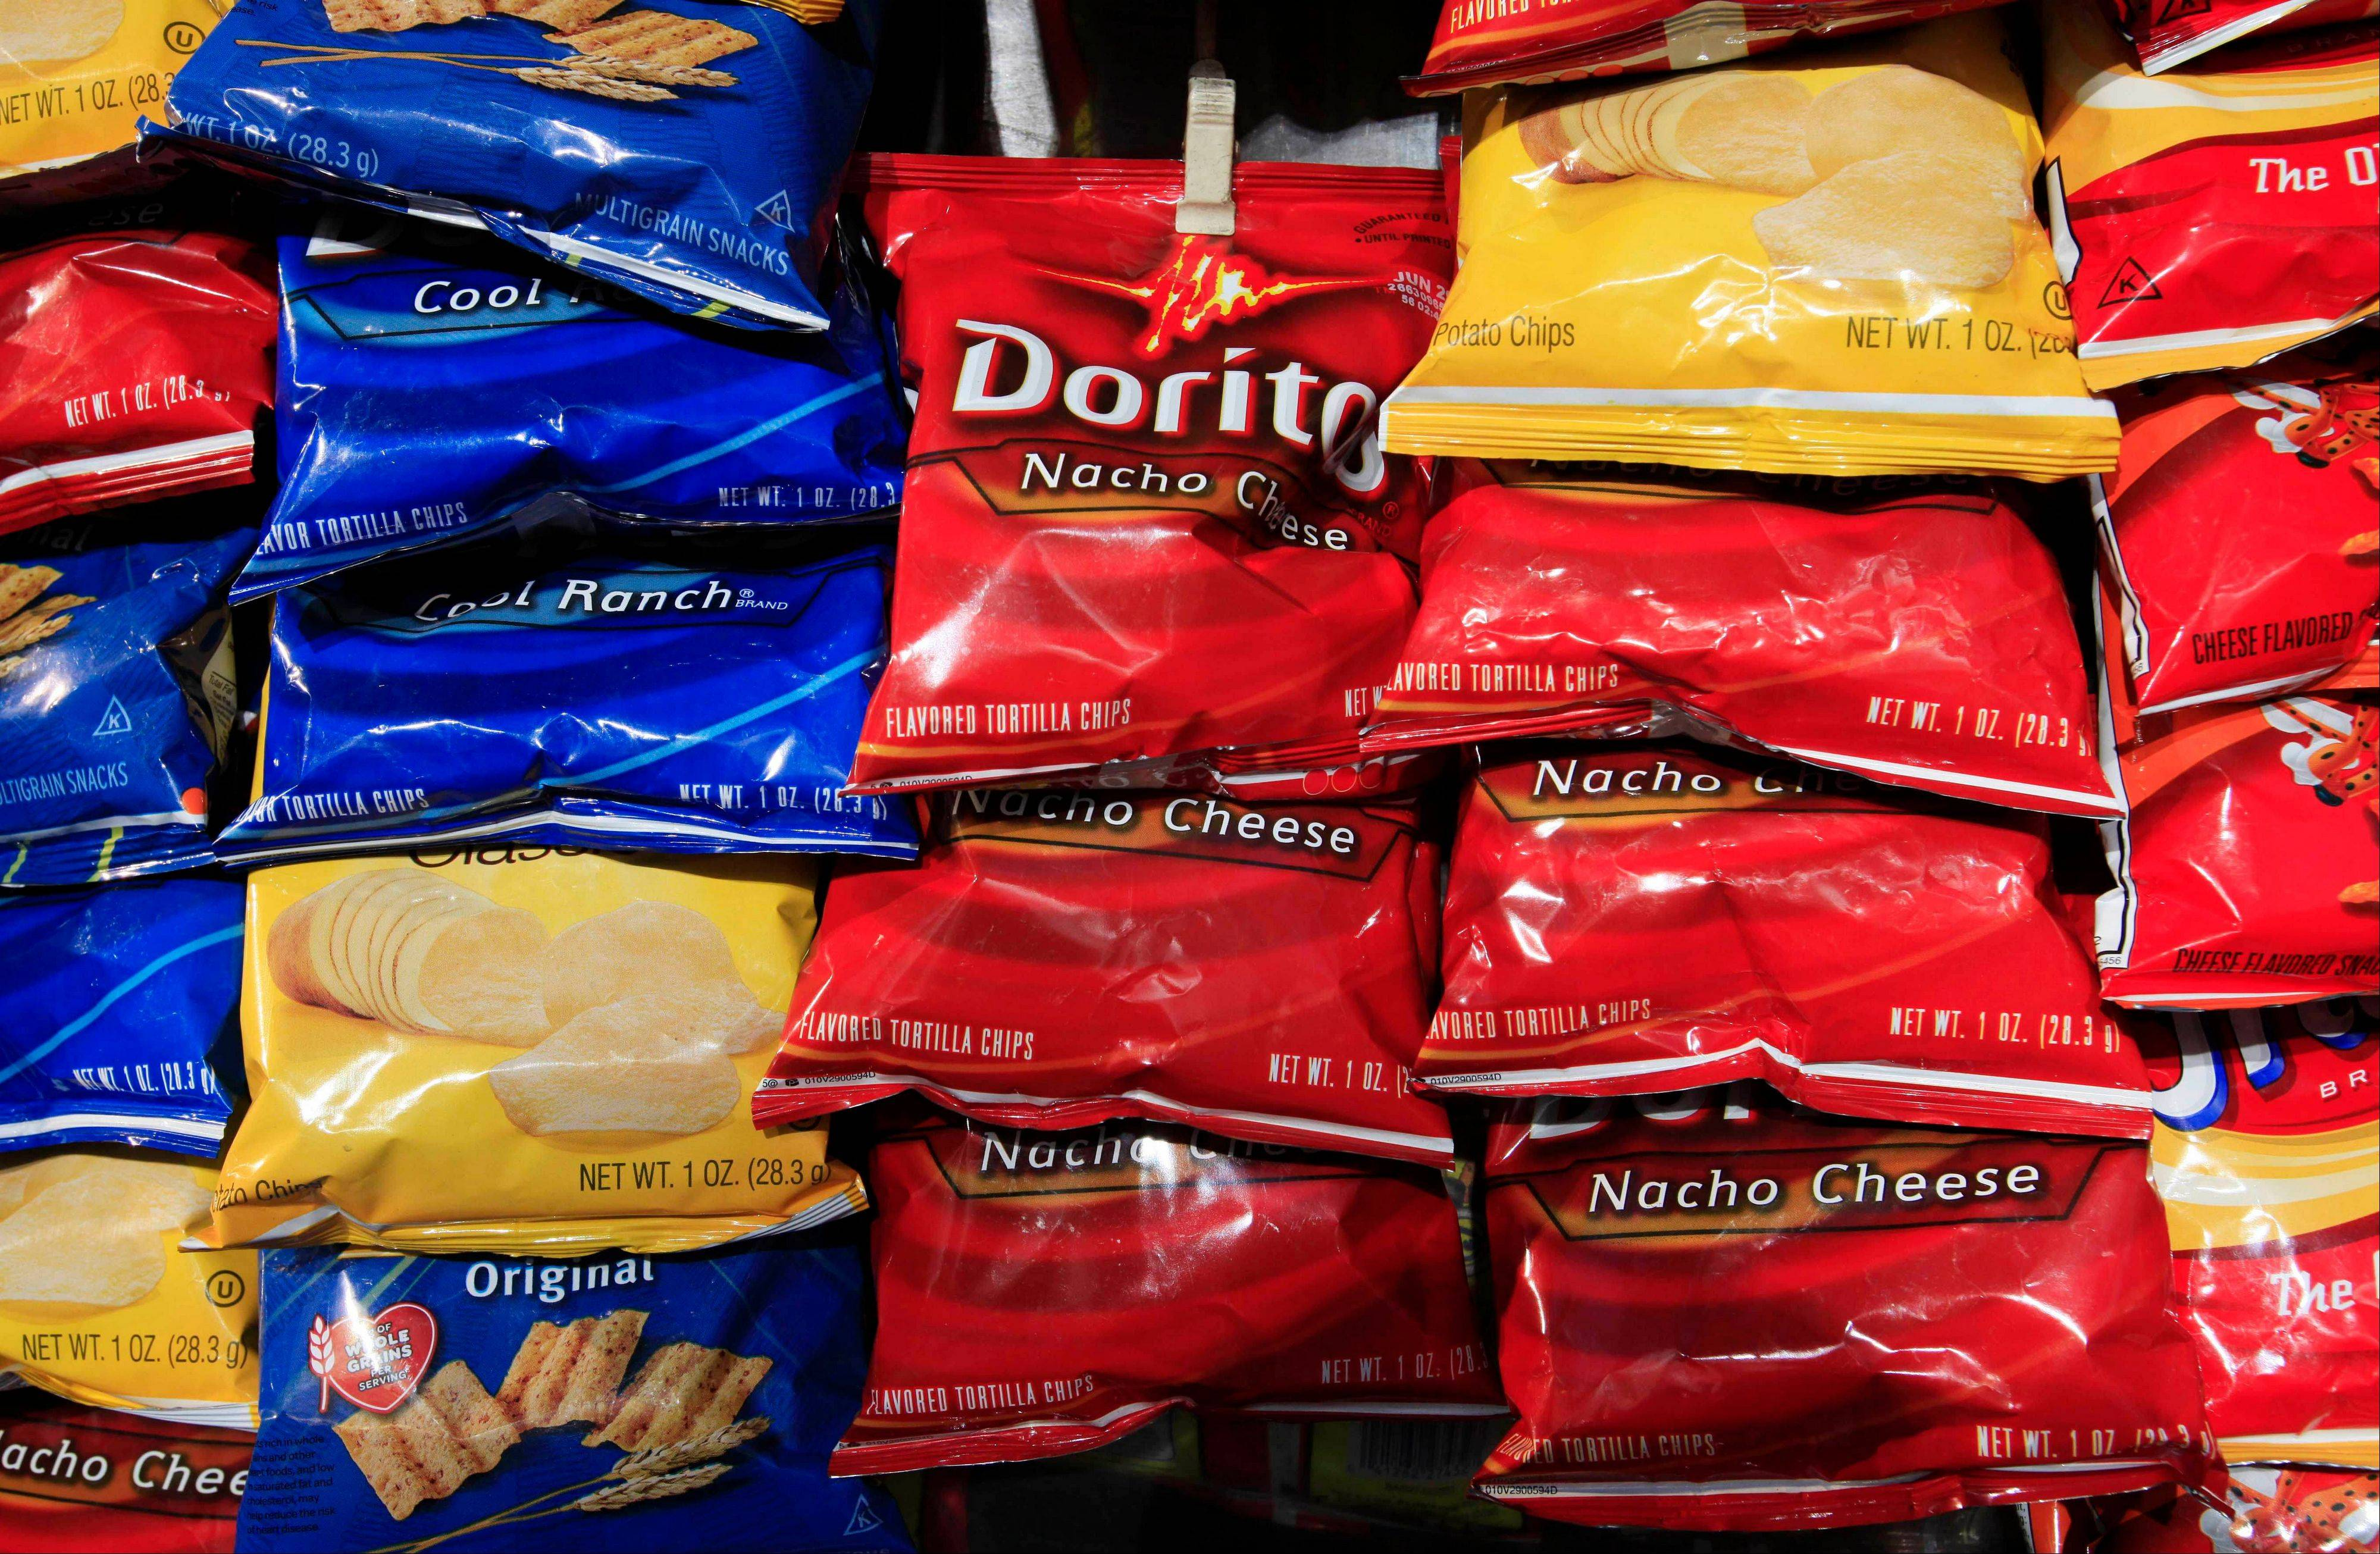 ASSOCIATED PRESS The snack food giant Frito-Lay plans to roll out its Doritos in a �Taco Bell� flavor as a limited-time product this spring, aiming to capitalize on the popularity of the Doritos-flavored tacos introduced by the fast-food chain last year.